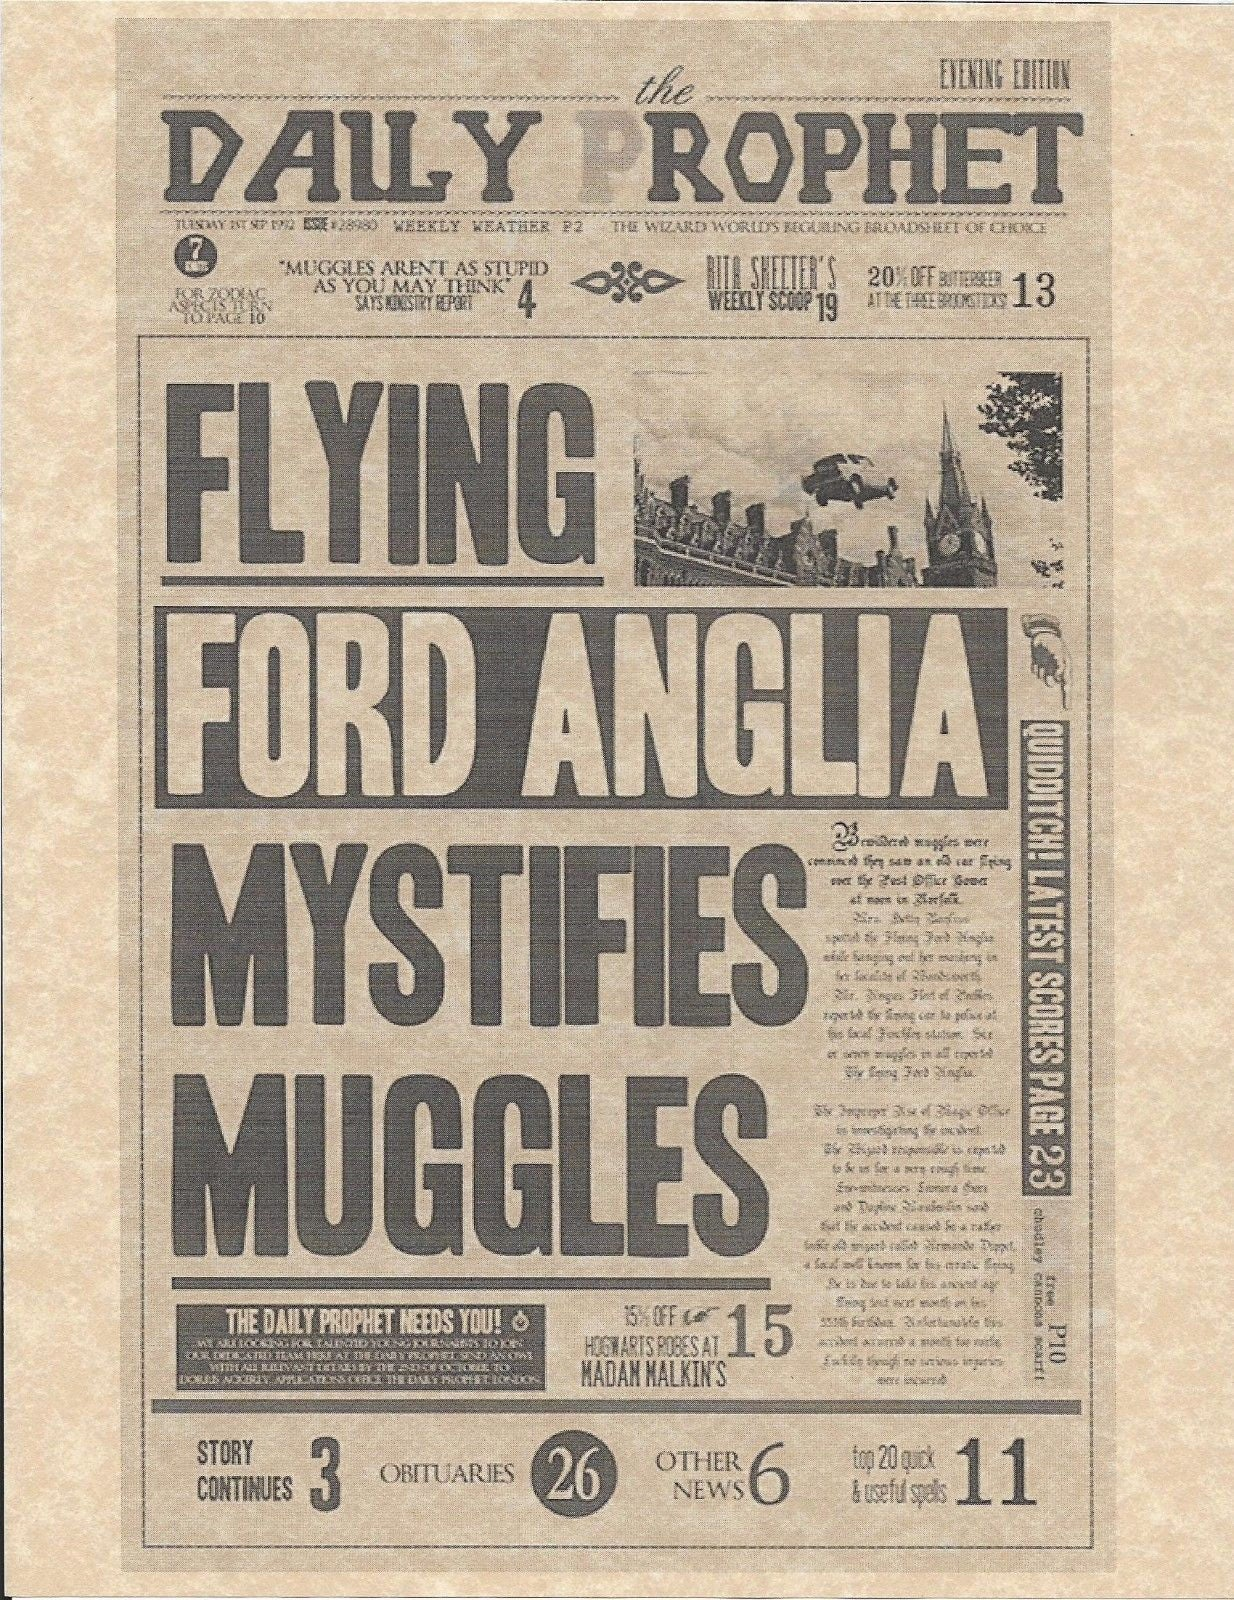 Harry potter daily prophet flying ford anglia flyerposter zoom 1betcityfo Images